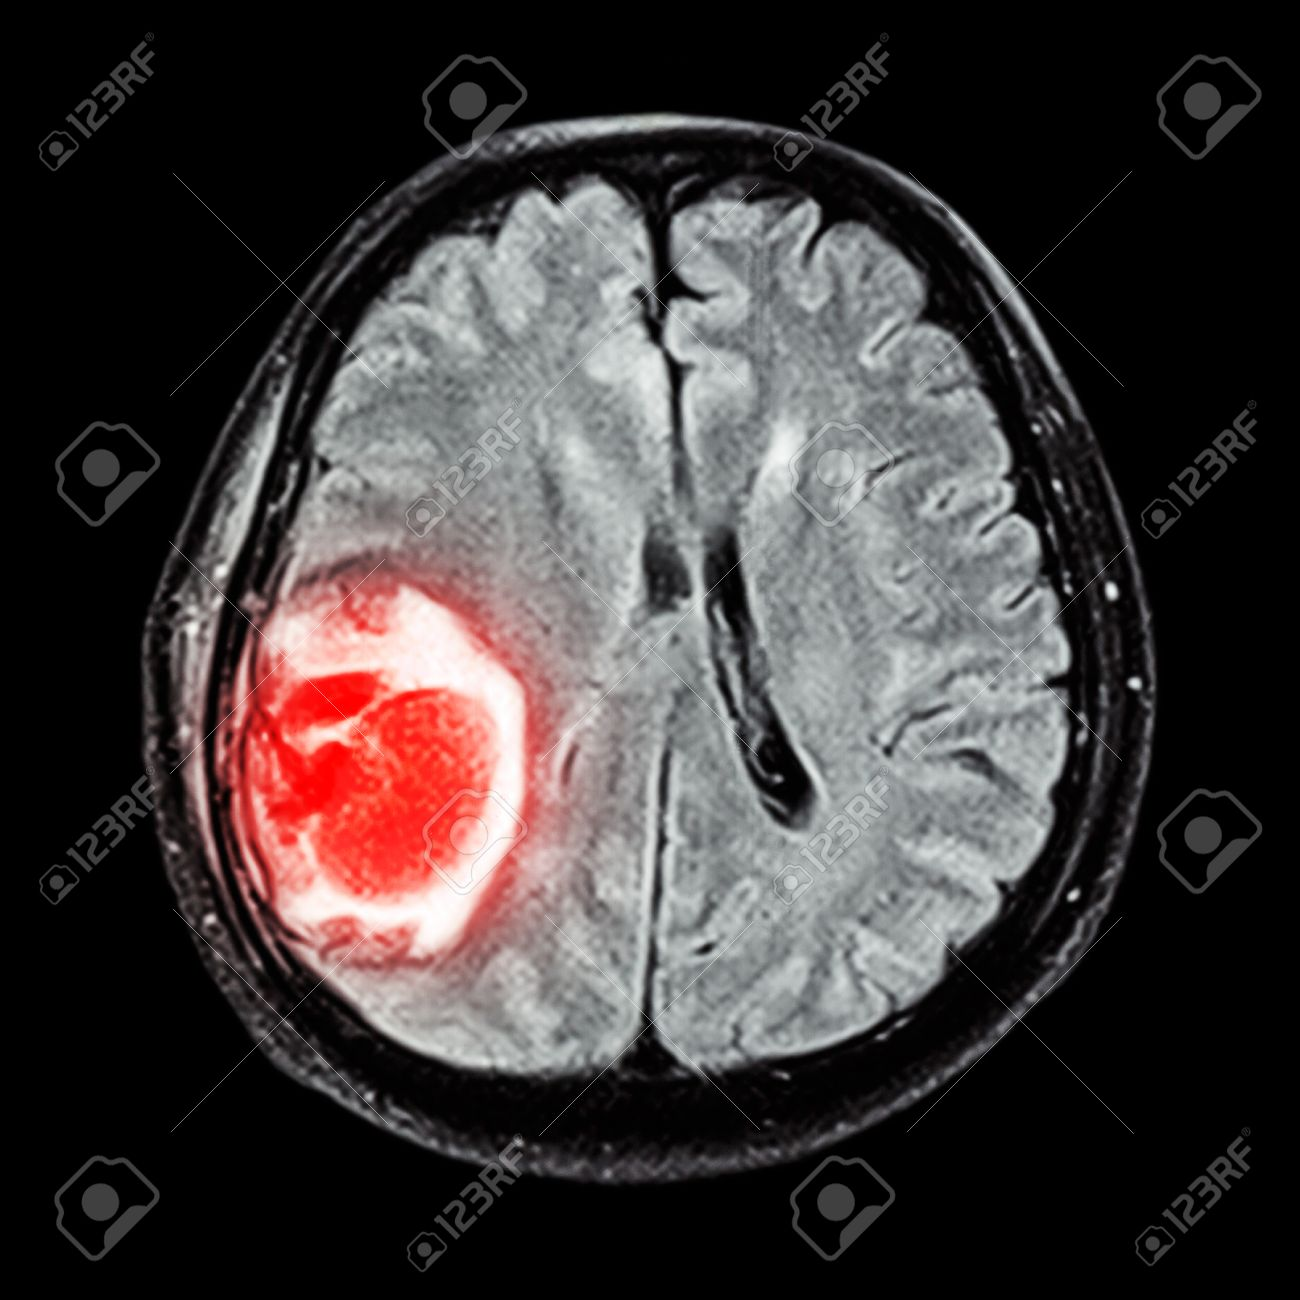 Mri Brain Show Brain Tumor At Right Parietal Lobe Of Cerebrum